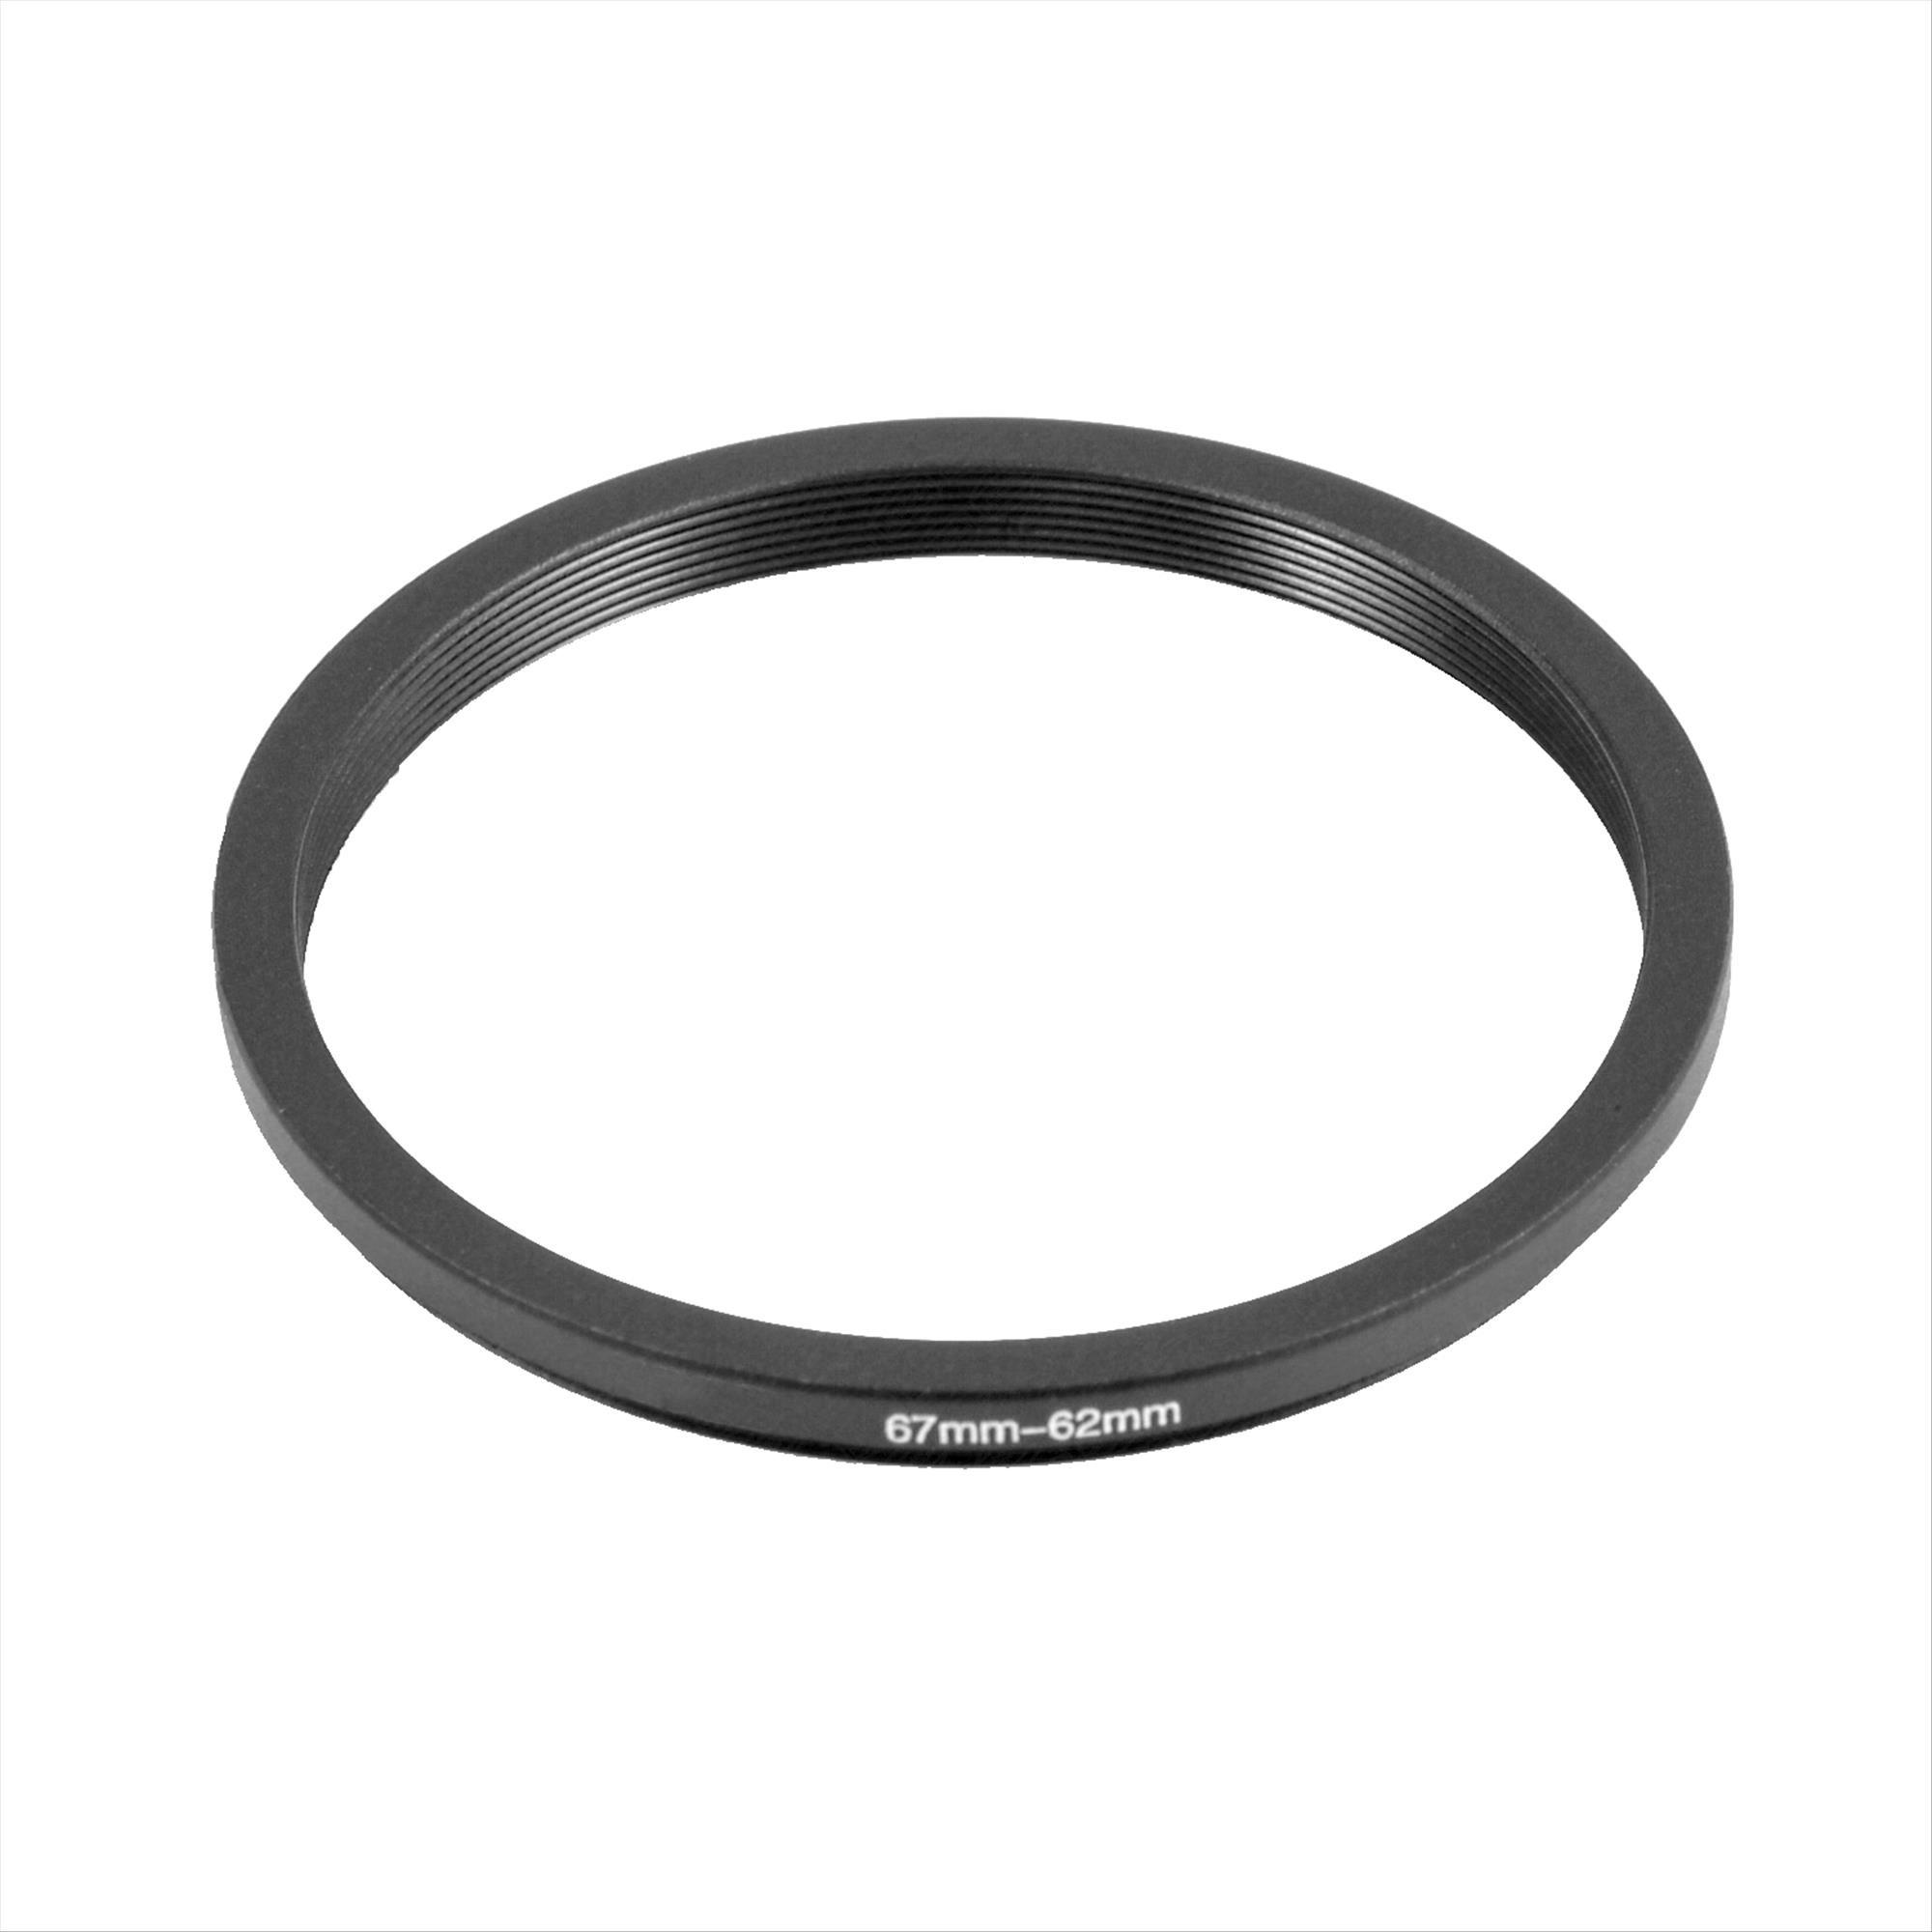 Hyperion Stepper-Ring M62/M67